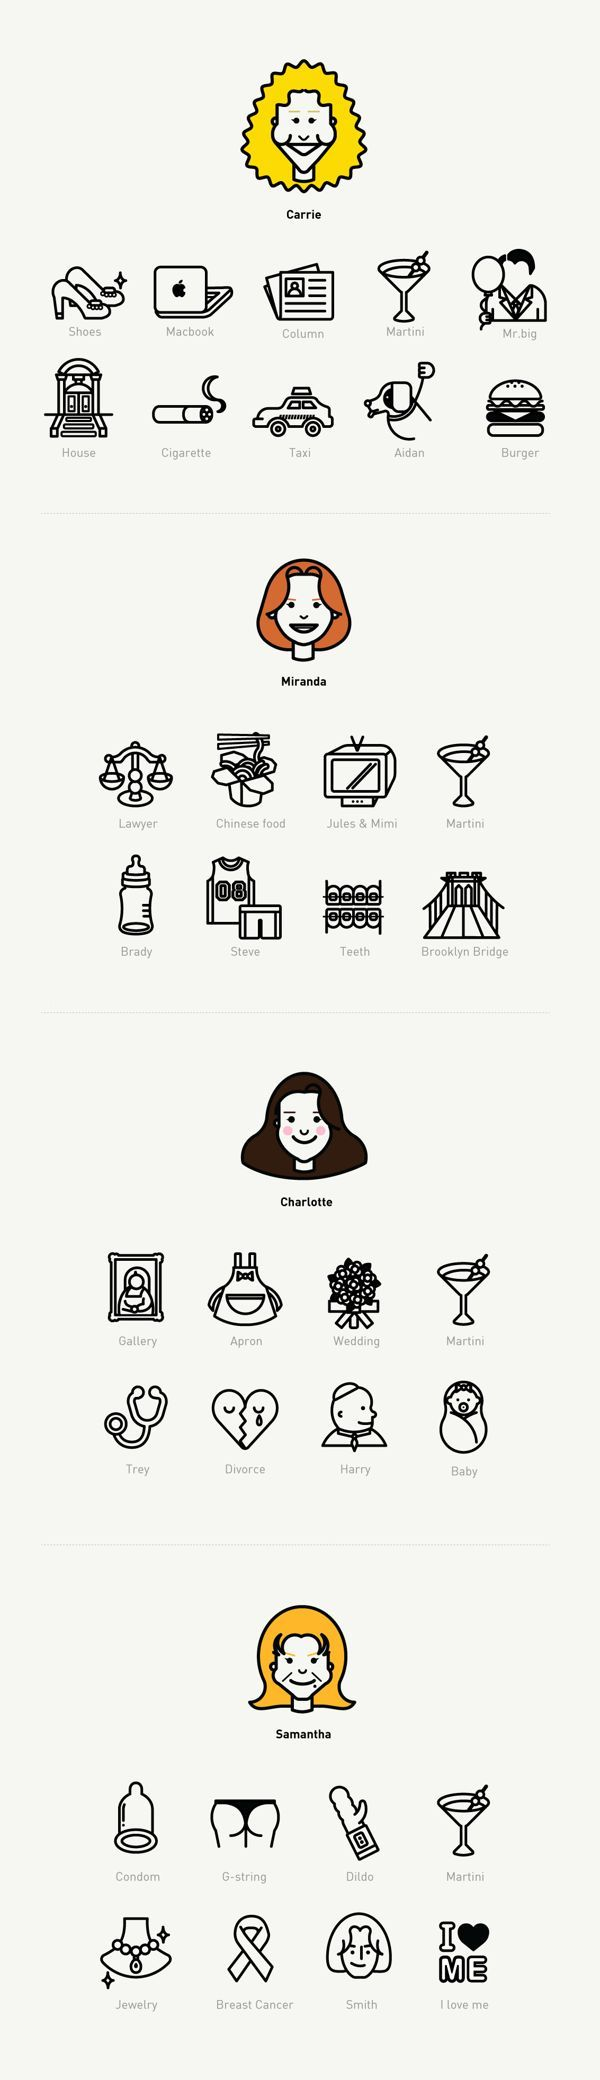 SexAndTheCity Icon set by Naomi Kim, via Behance. If you like UX, design, or design thinking, check out theuxblog.com